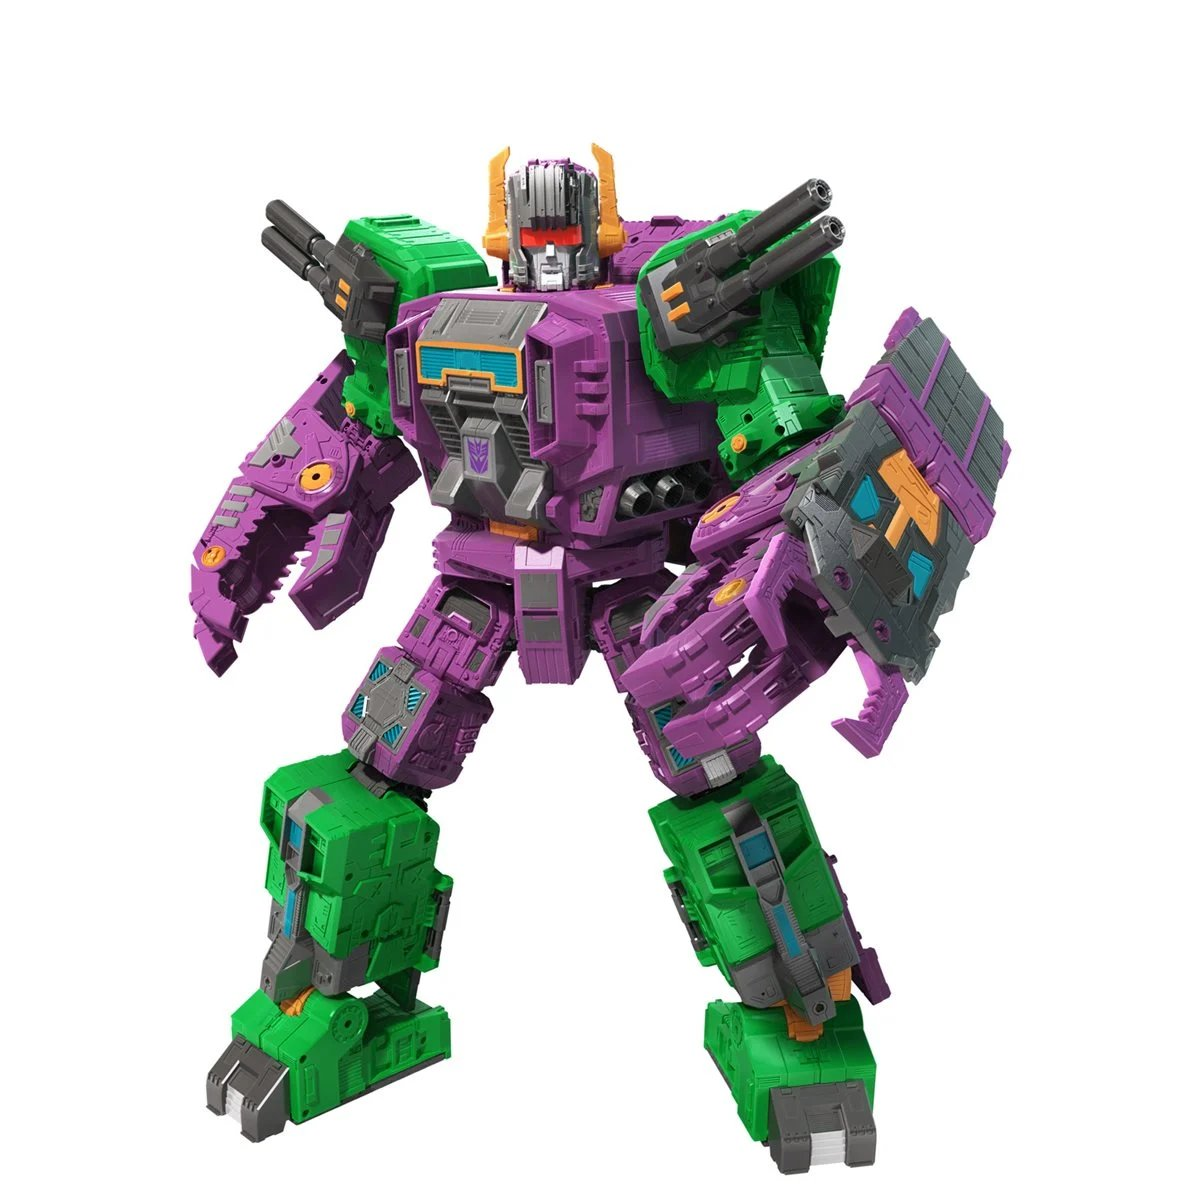 Hasbro Transformers War For Cybertron: Earthrise Scorponok Figure Pre-Orders